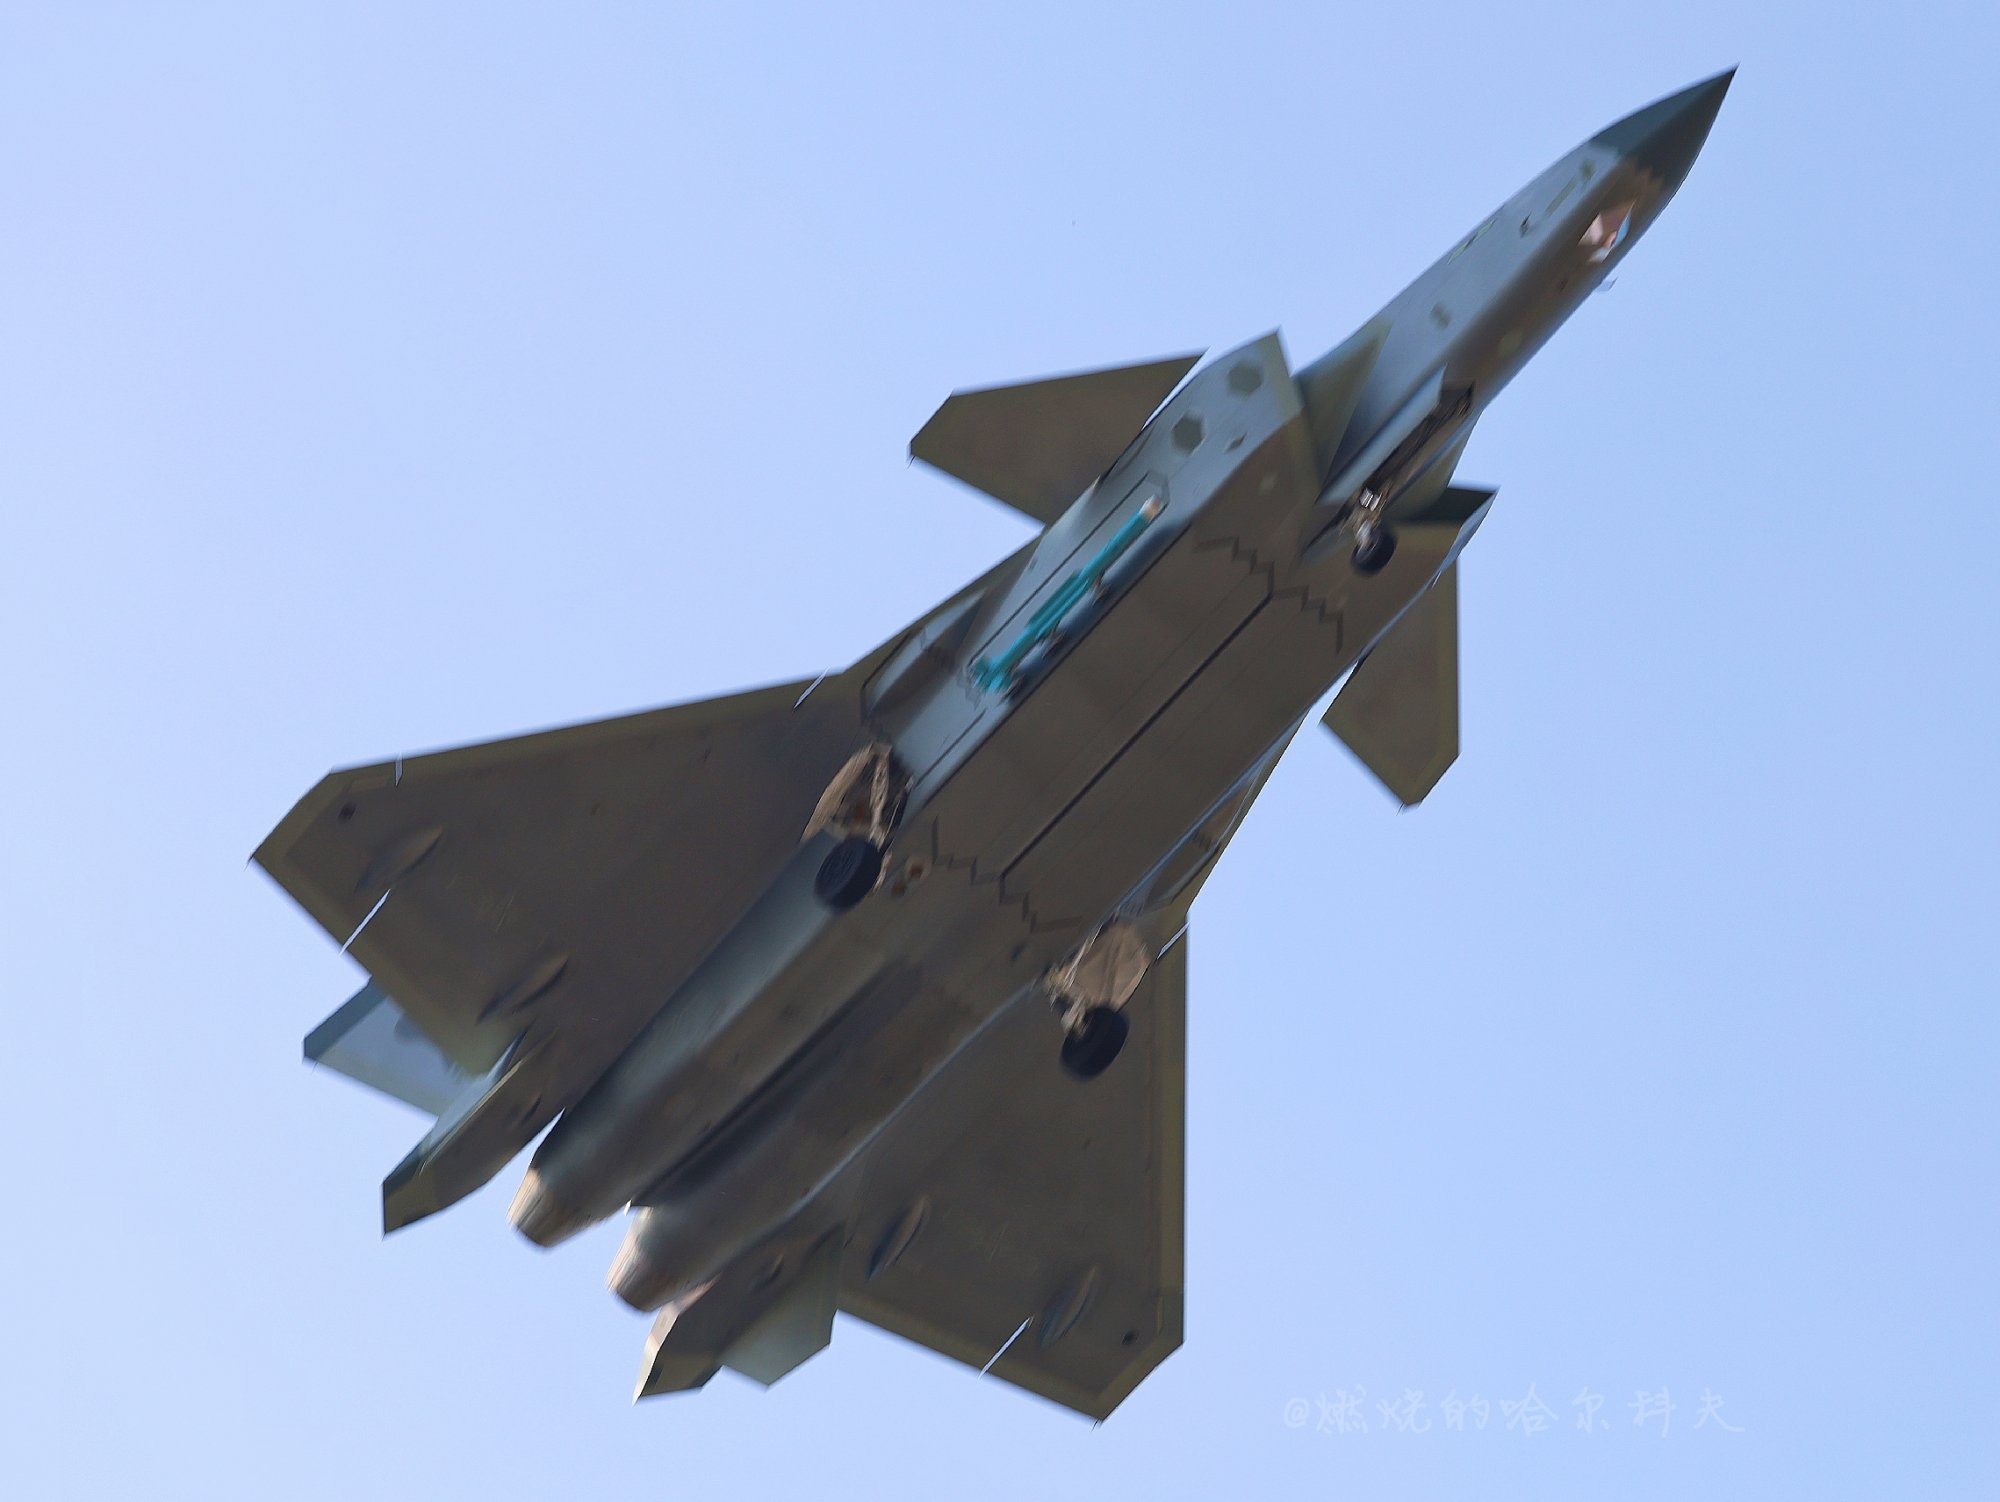 J-20 with a lateral missile side extended 2020-11.jpg